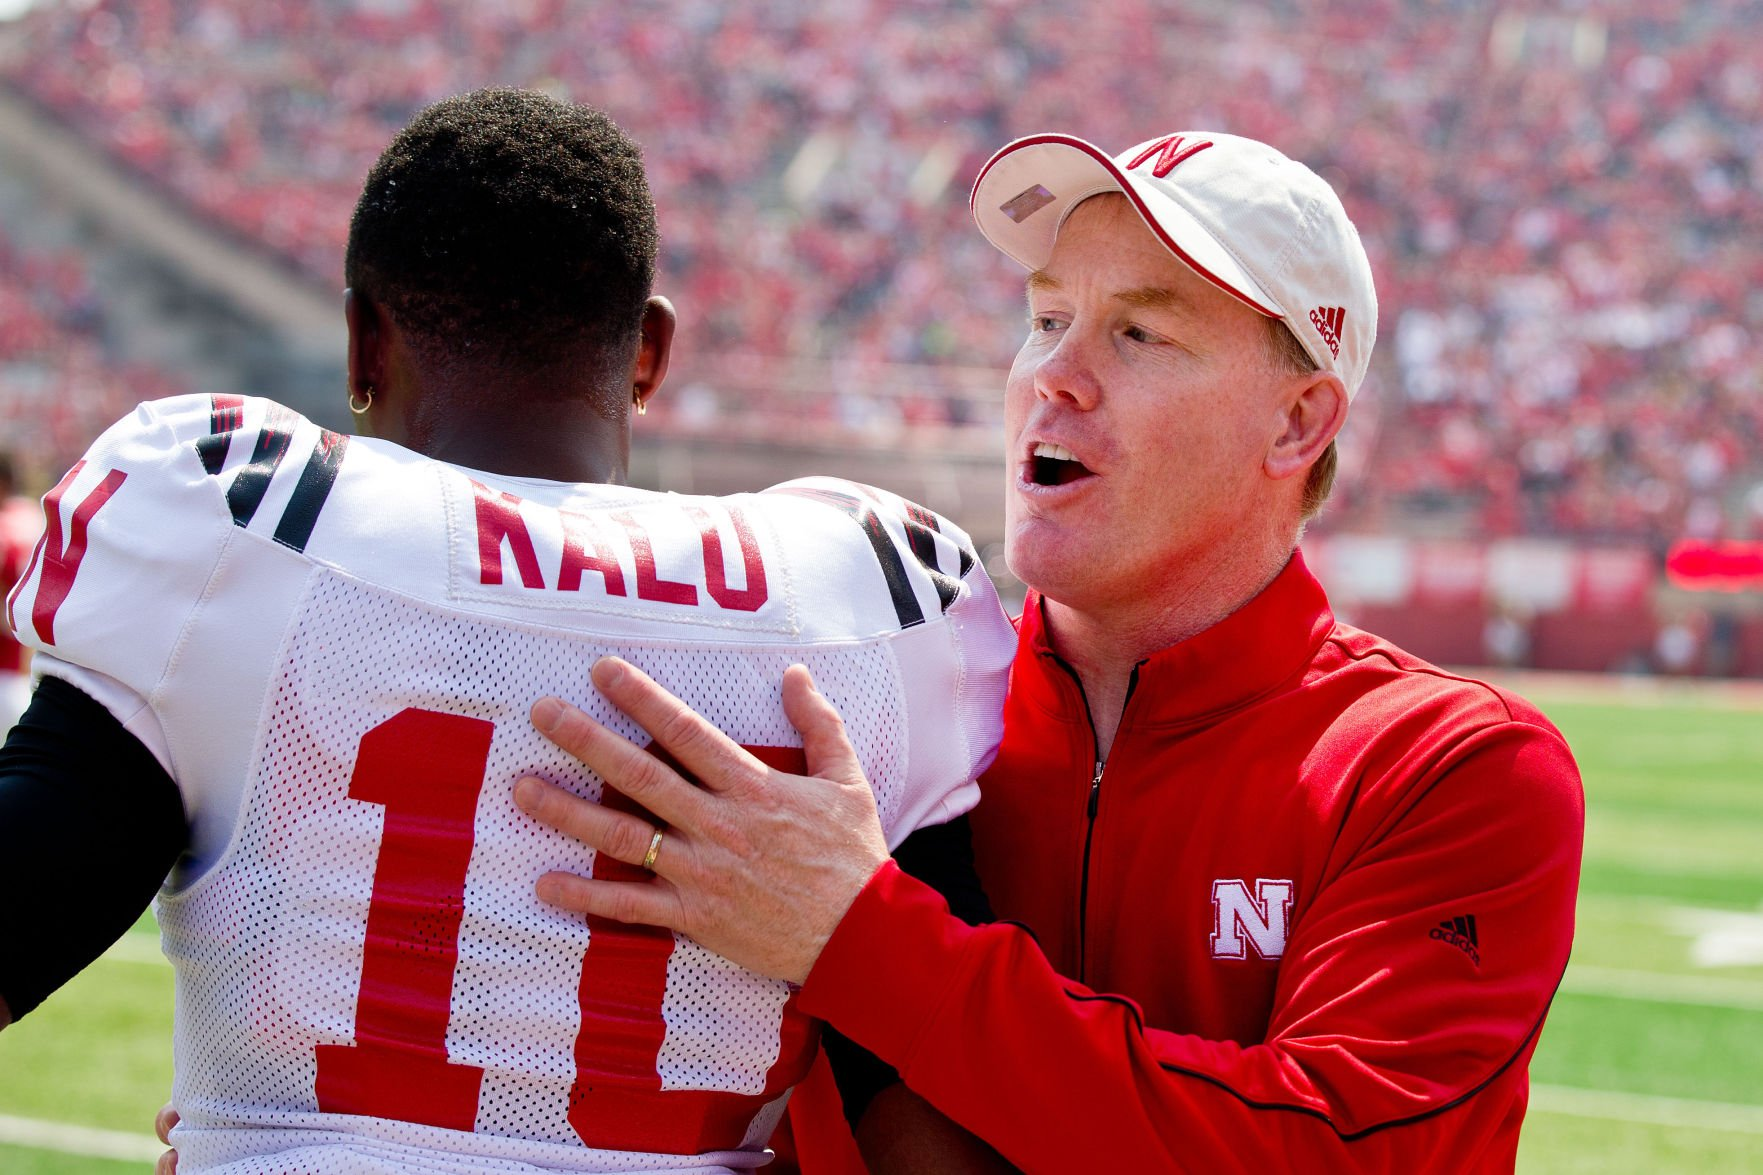 Nebraska fires athletic director Shawn Eichorst